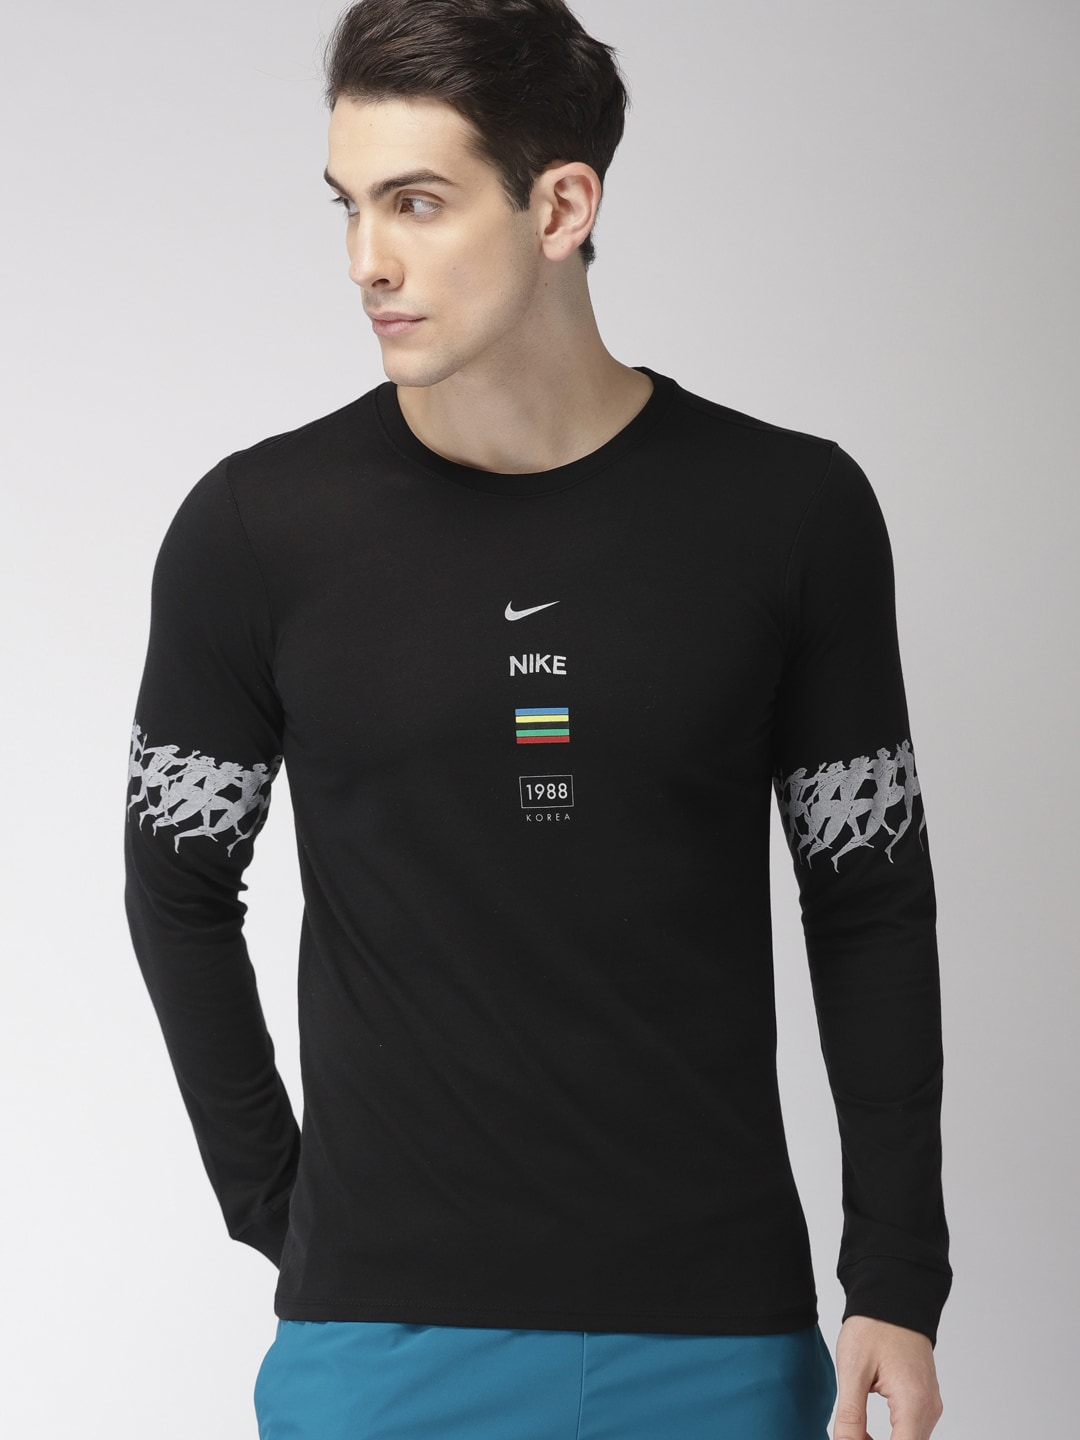 7368c276b SIMILAR PRODUCTS. Nike. Rs. 1995 Rs. 1296 (35% OFF). Printed Round Neck T- shirt